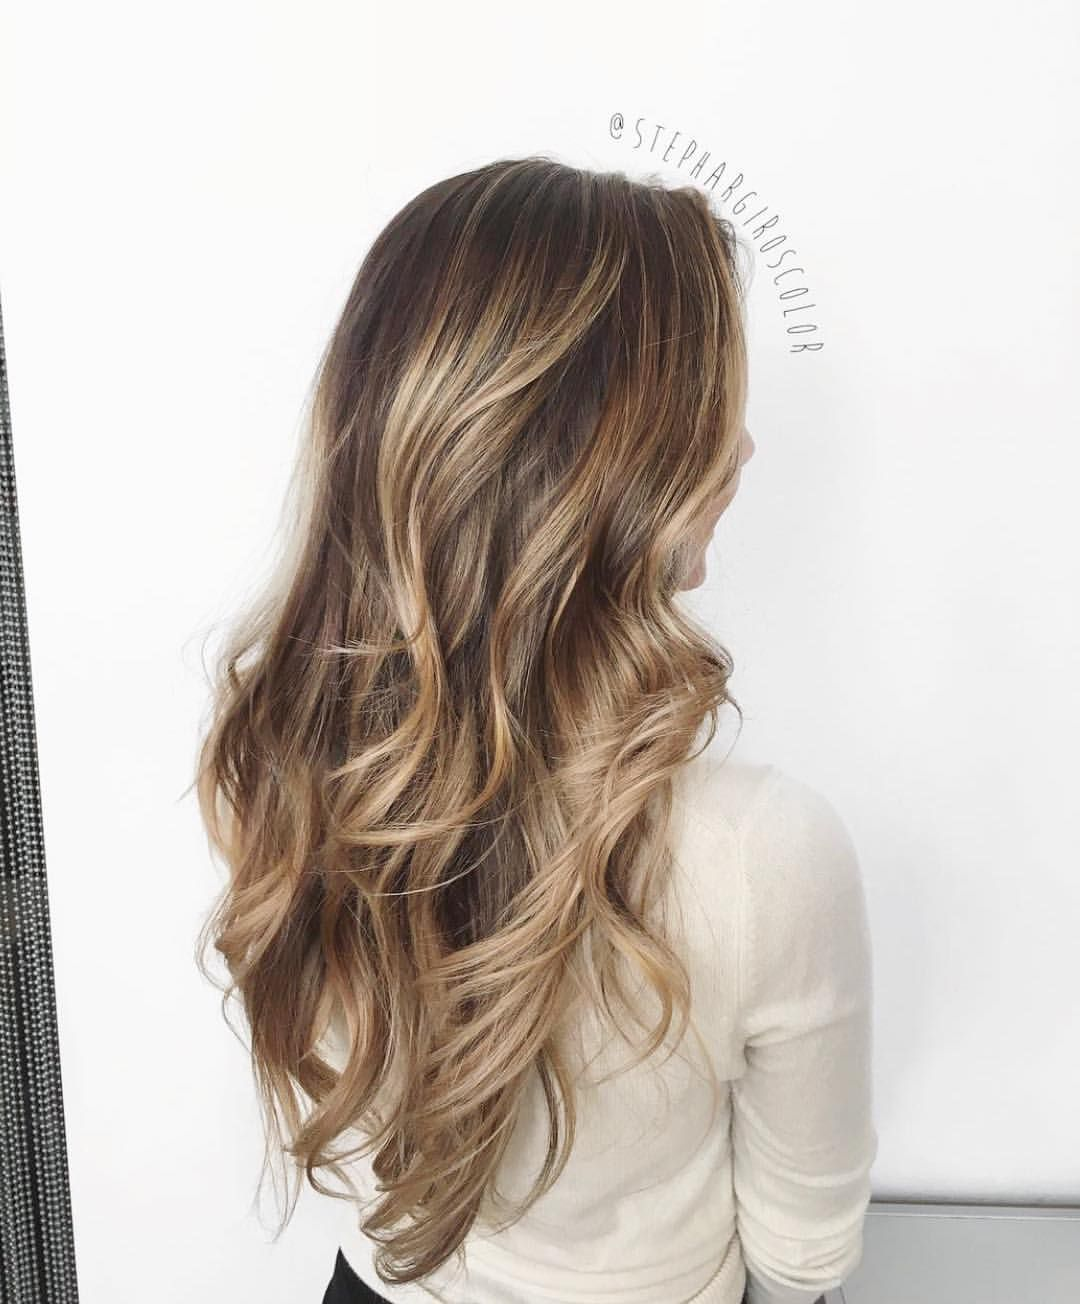 15 Balayage Hair Color Ideas With Blonde Highlights: Balayage And Haircolor ϸ� On Instagram: €�Sunkissed Color